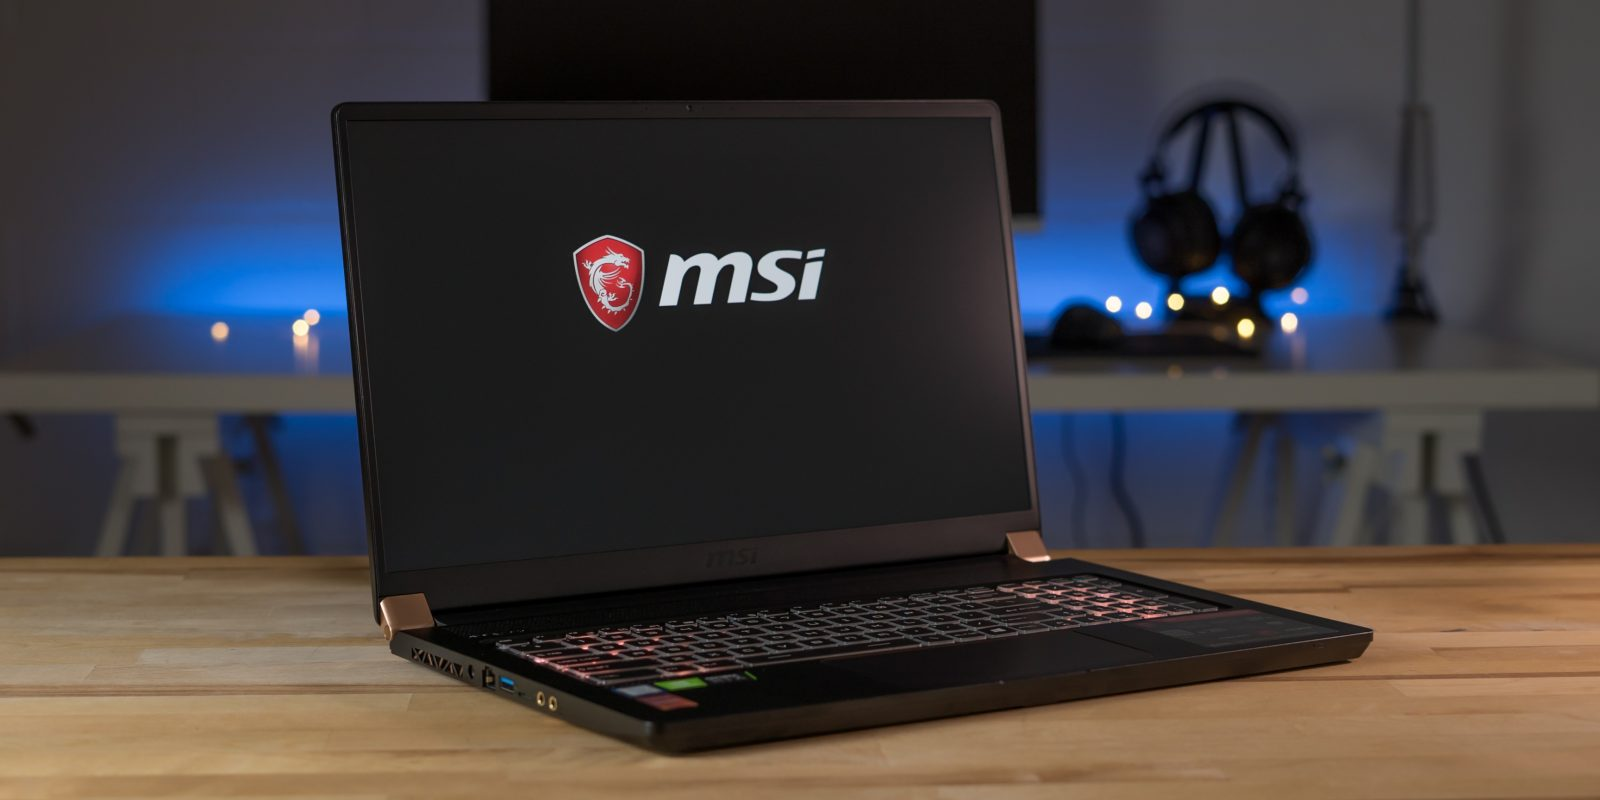 MSI GS75 Stealth Review: Gaming laptop w/ power - 9to5Toys